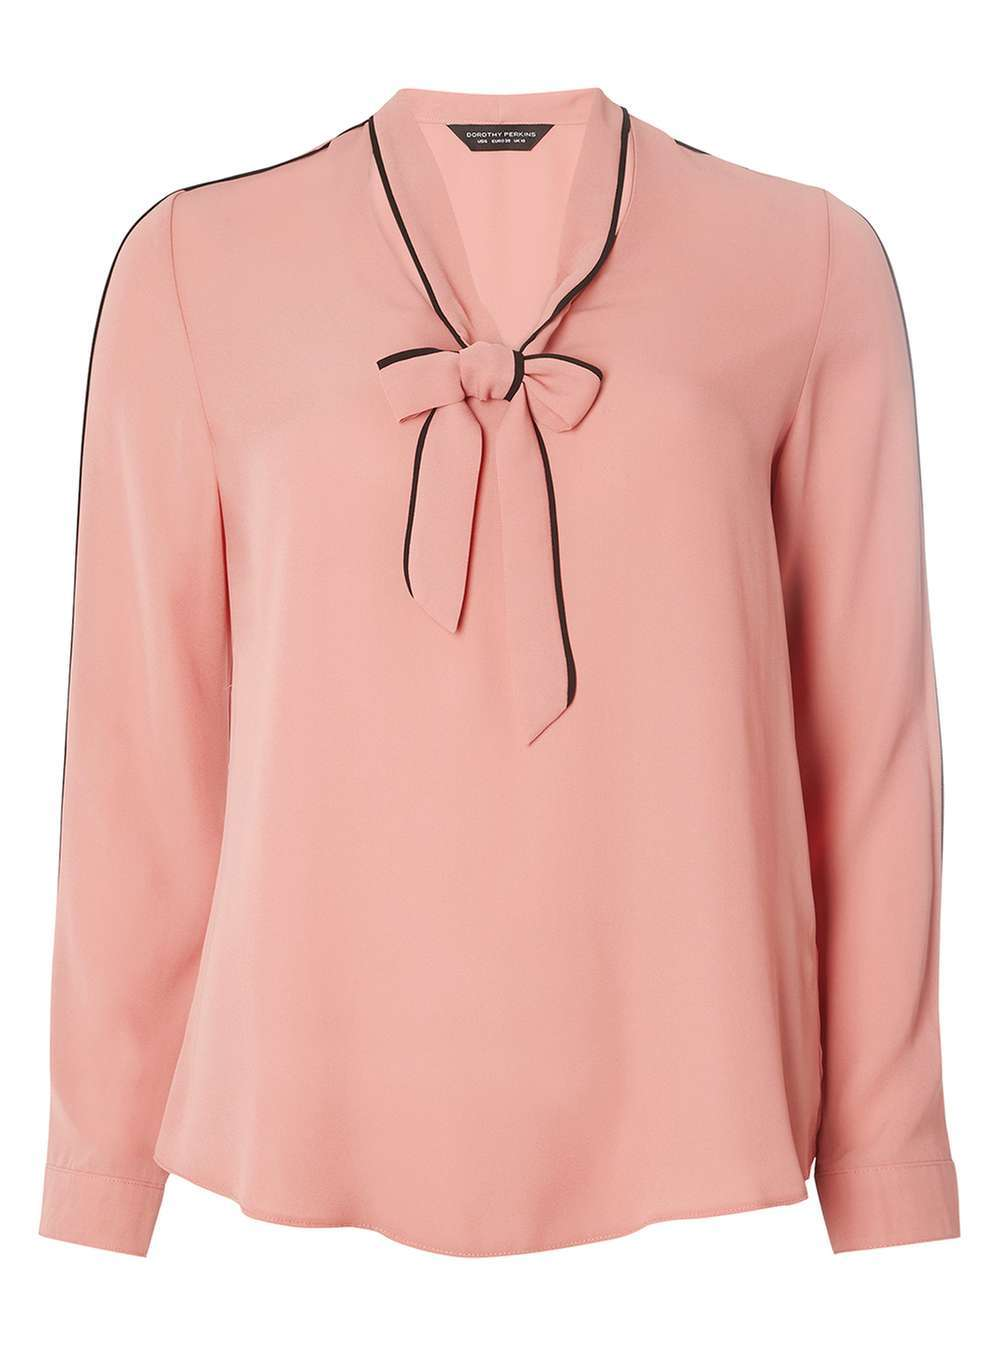 Womens Rose Long Sleeve Pussybow Top Dusky Rose - pattern: plain; neckline: pussy bow; style: blouse; predominant colour: pink; secondary colour: black; occasions: casual, creative work; length: standard; fibres: polyester/polyamide - 100%; fit: body skimming; sleeve length: long sleeve; sleeve style: standard; pattern type: fabric; texture group: other - light to midweight; season: a/w 2016; wardrobe: highlight